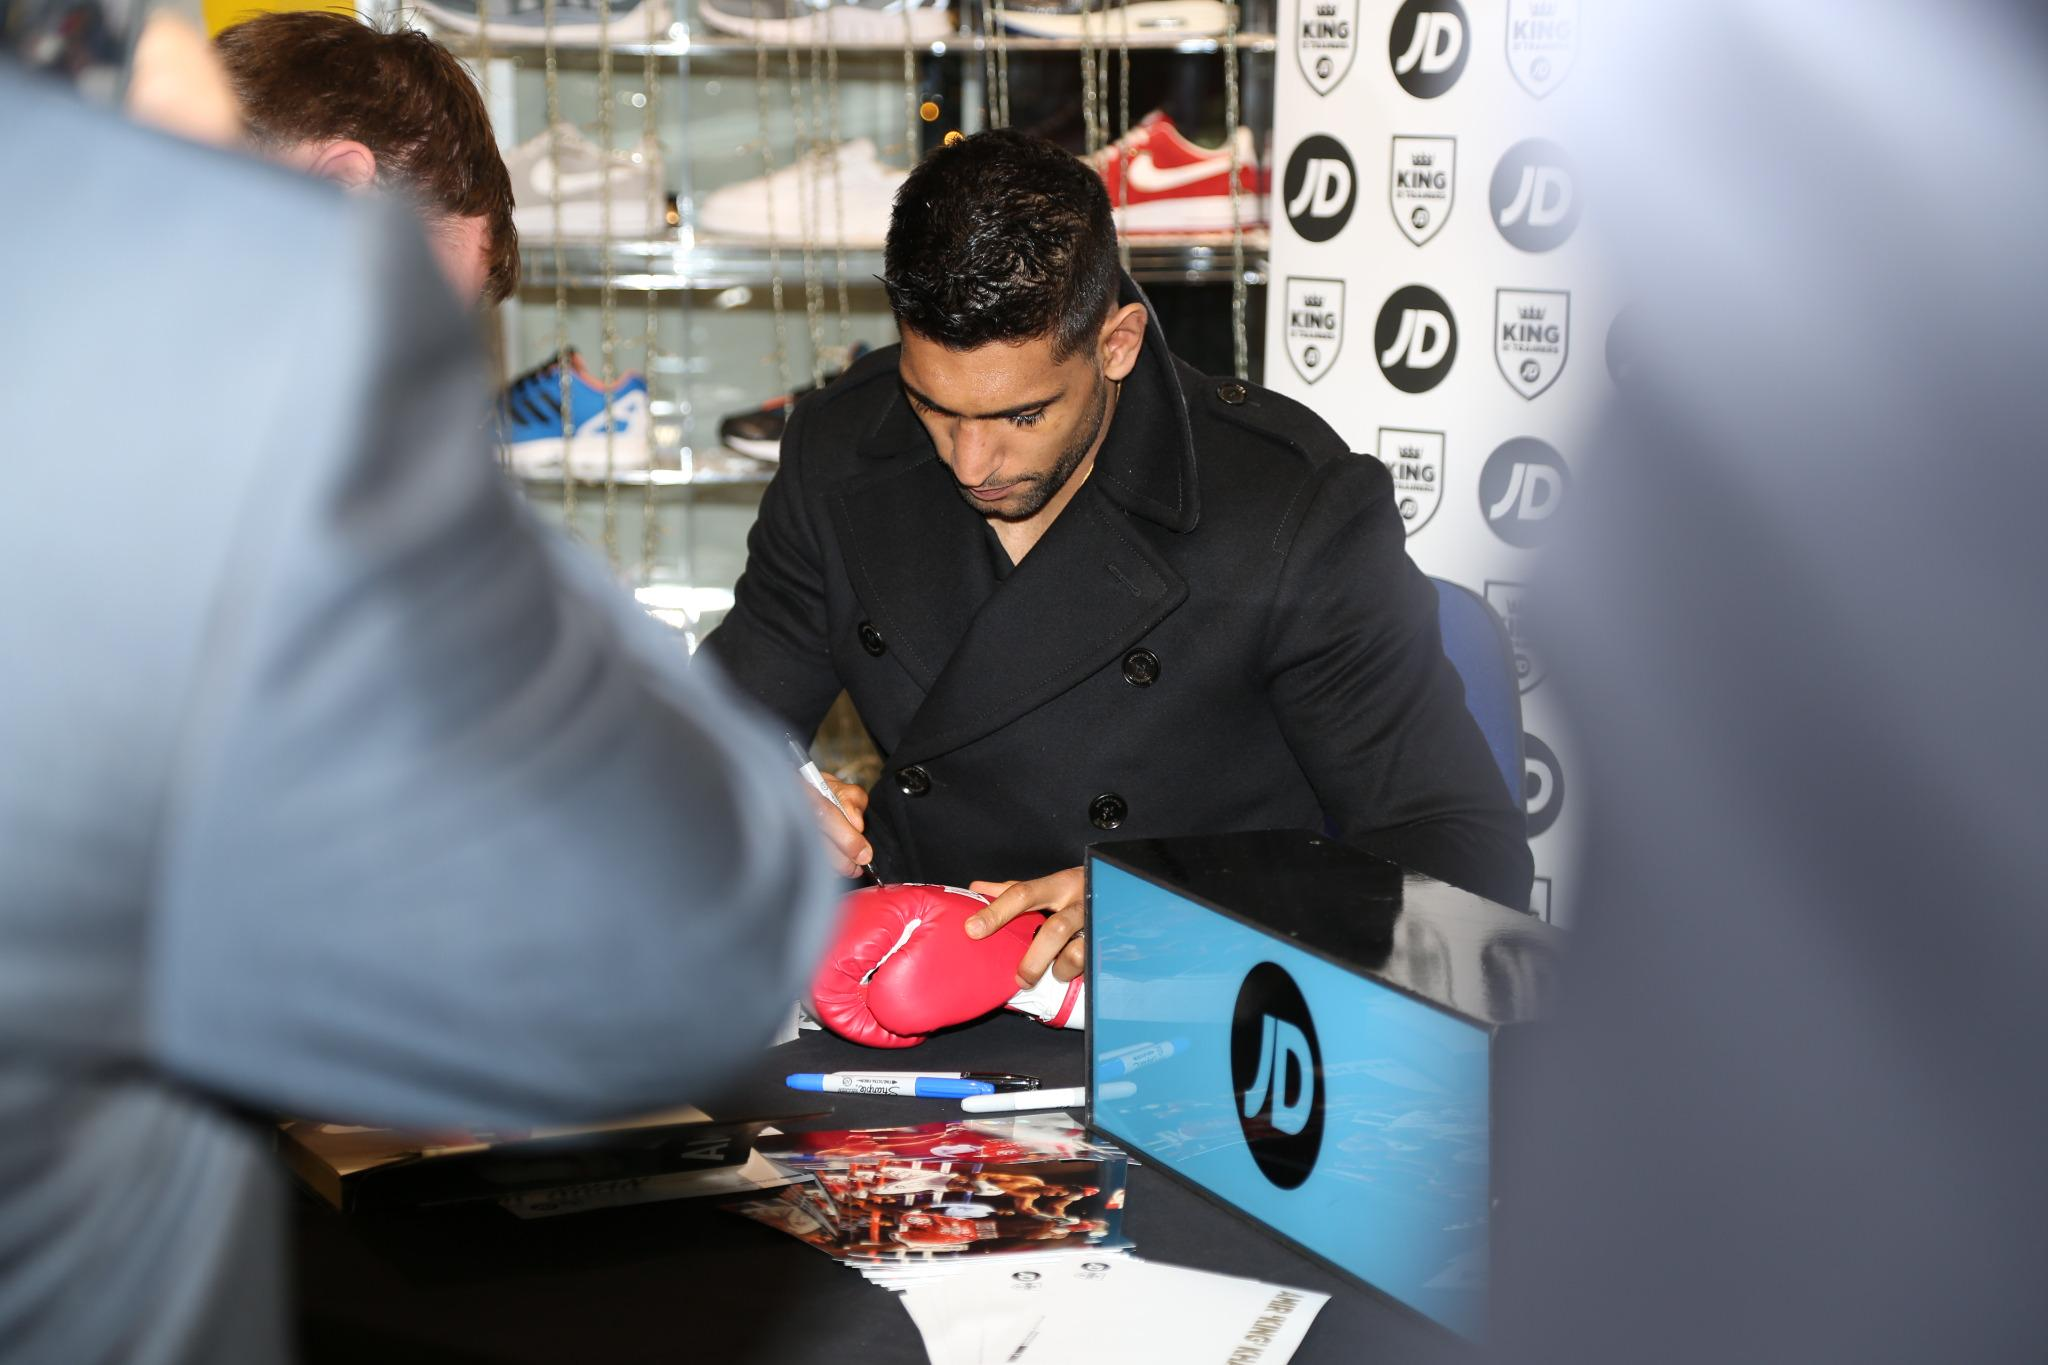 RT @JDsportsfashion: .@AmirKingKhan is currently doing a signing session in #jdsports Market Place, #Bolton. He'll be around until 7pm. htt…